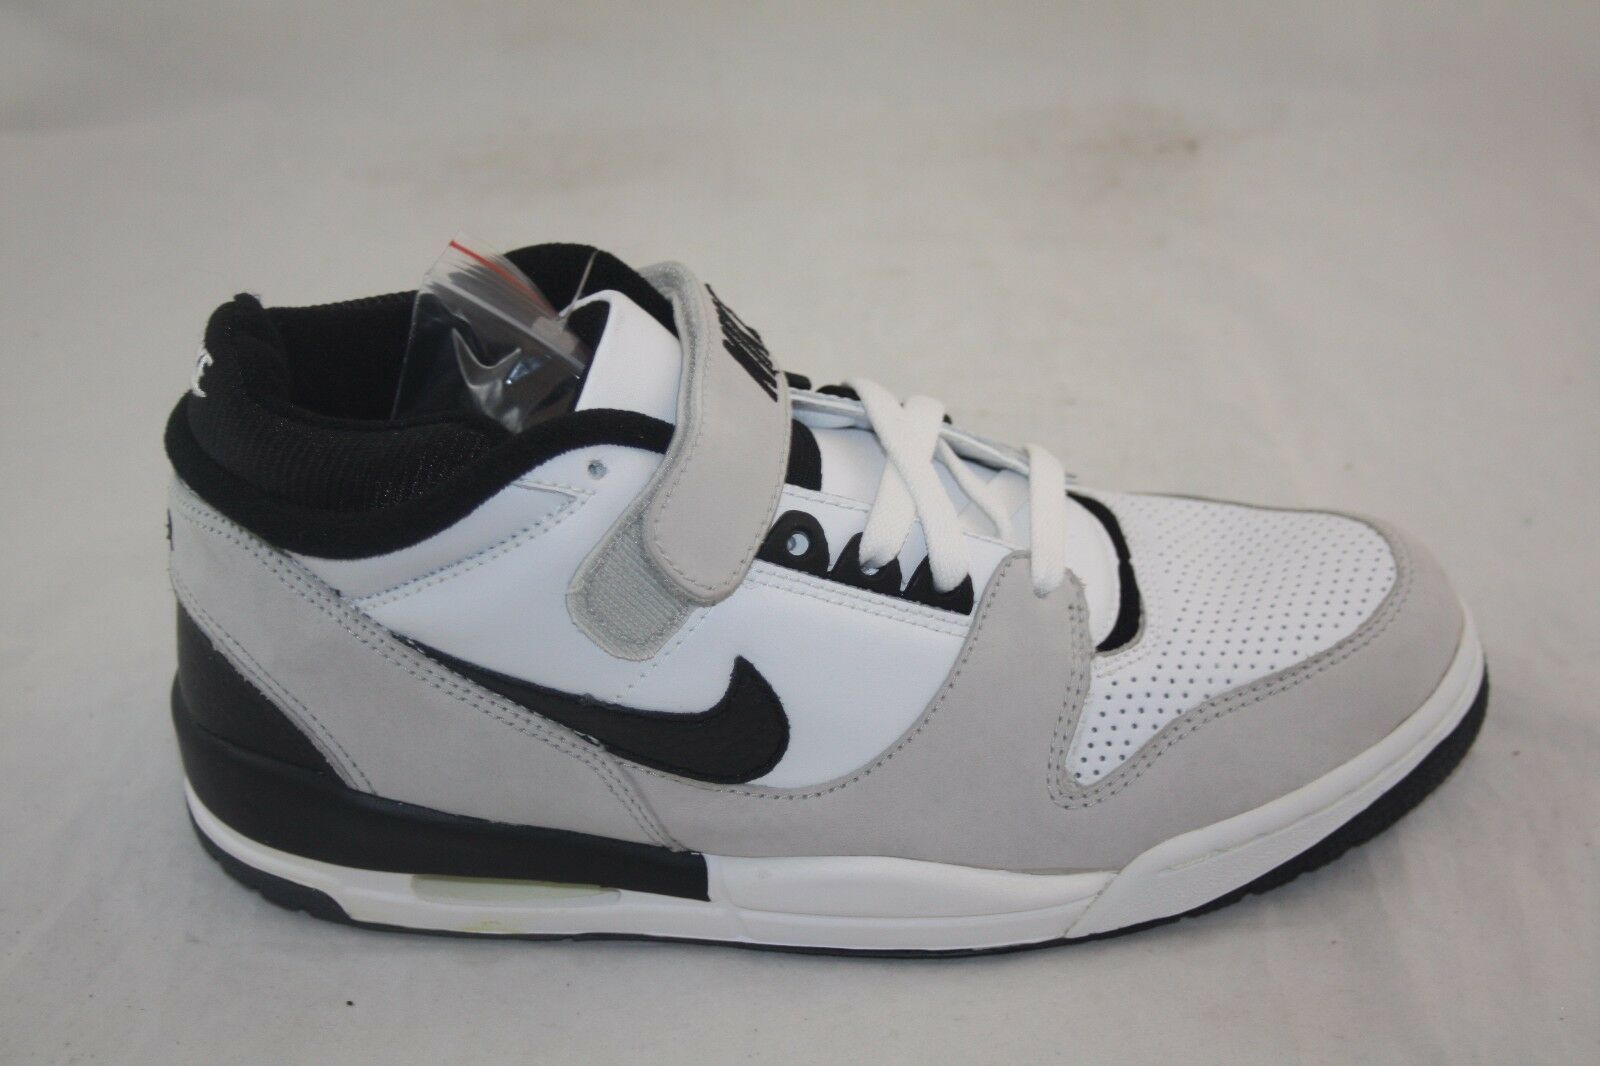 MEN'S NIKE AIR REVOLUTION MID 301173-101 WHITE BLACK-NEUTRAL GREY WAS  85.00